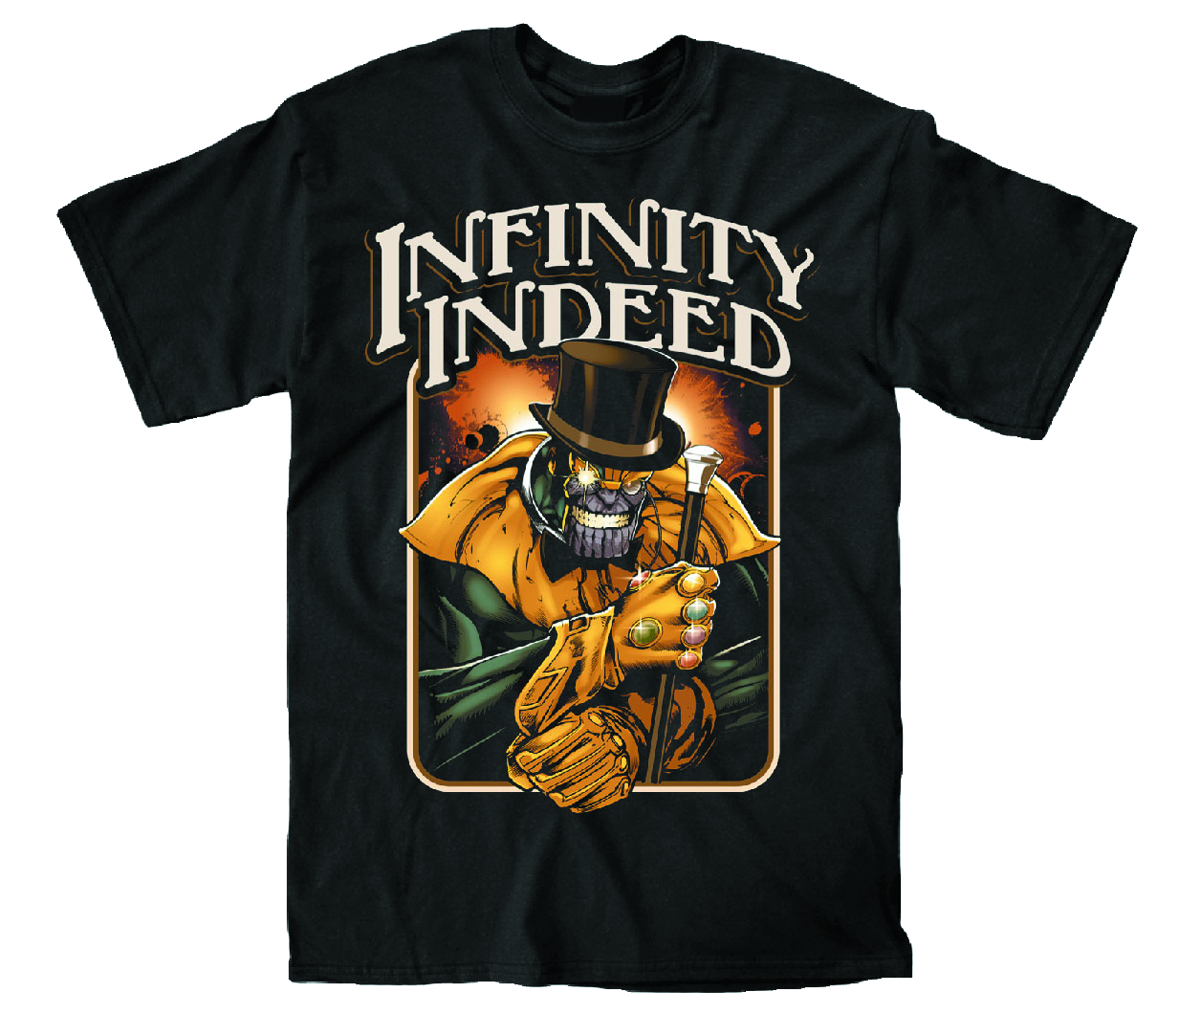 THANOS INFINITY INDEED PX BLK T/S XL